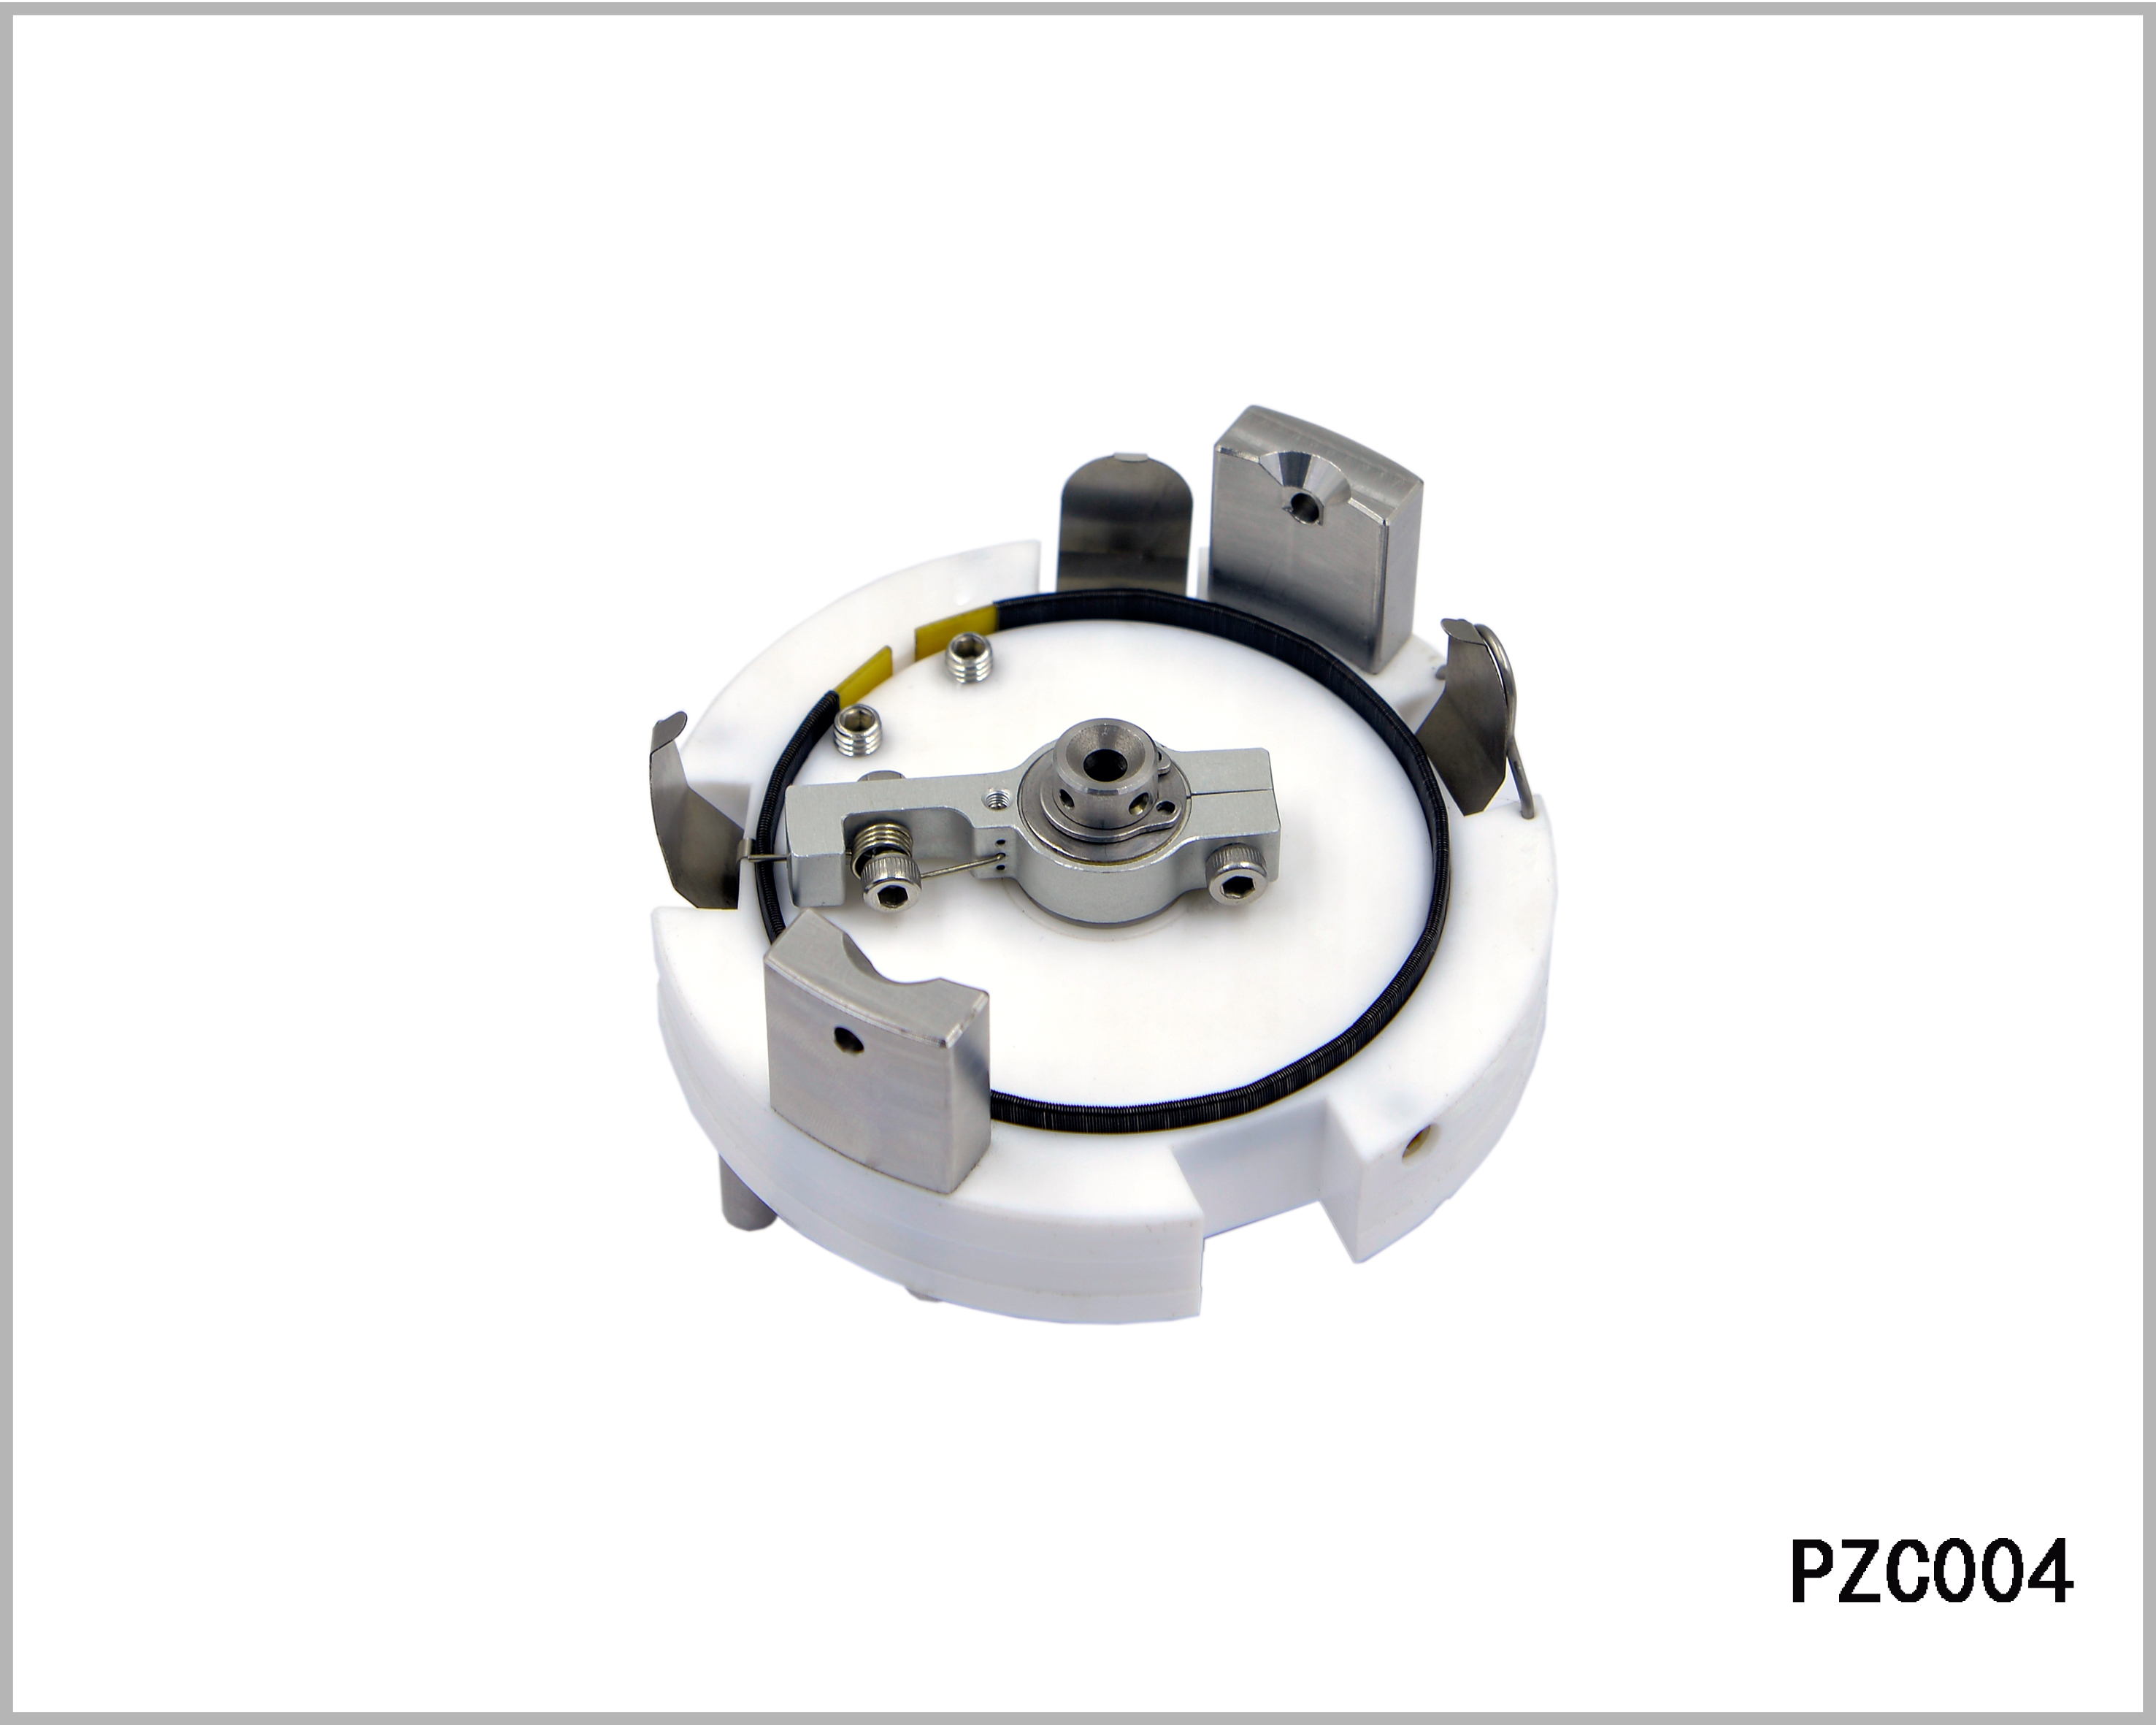 Potentiometer-Pressurized Consistometer